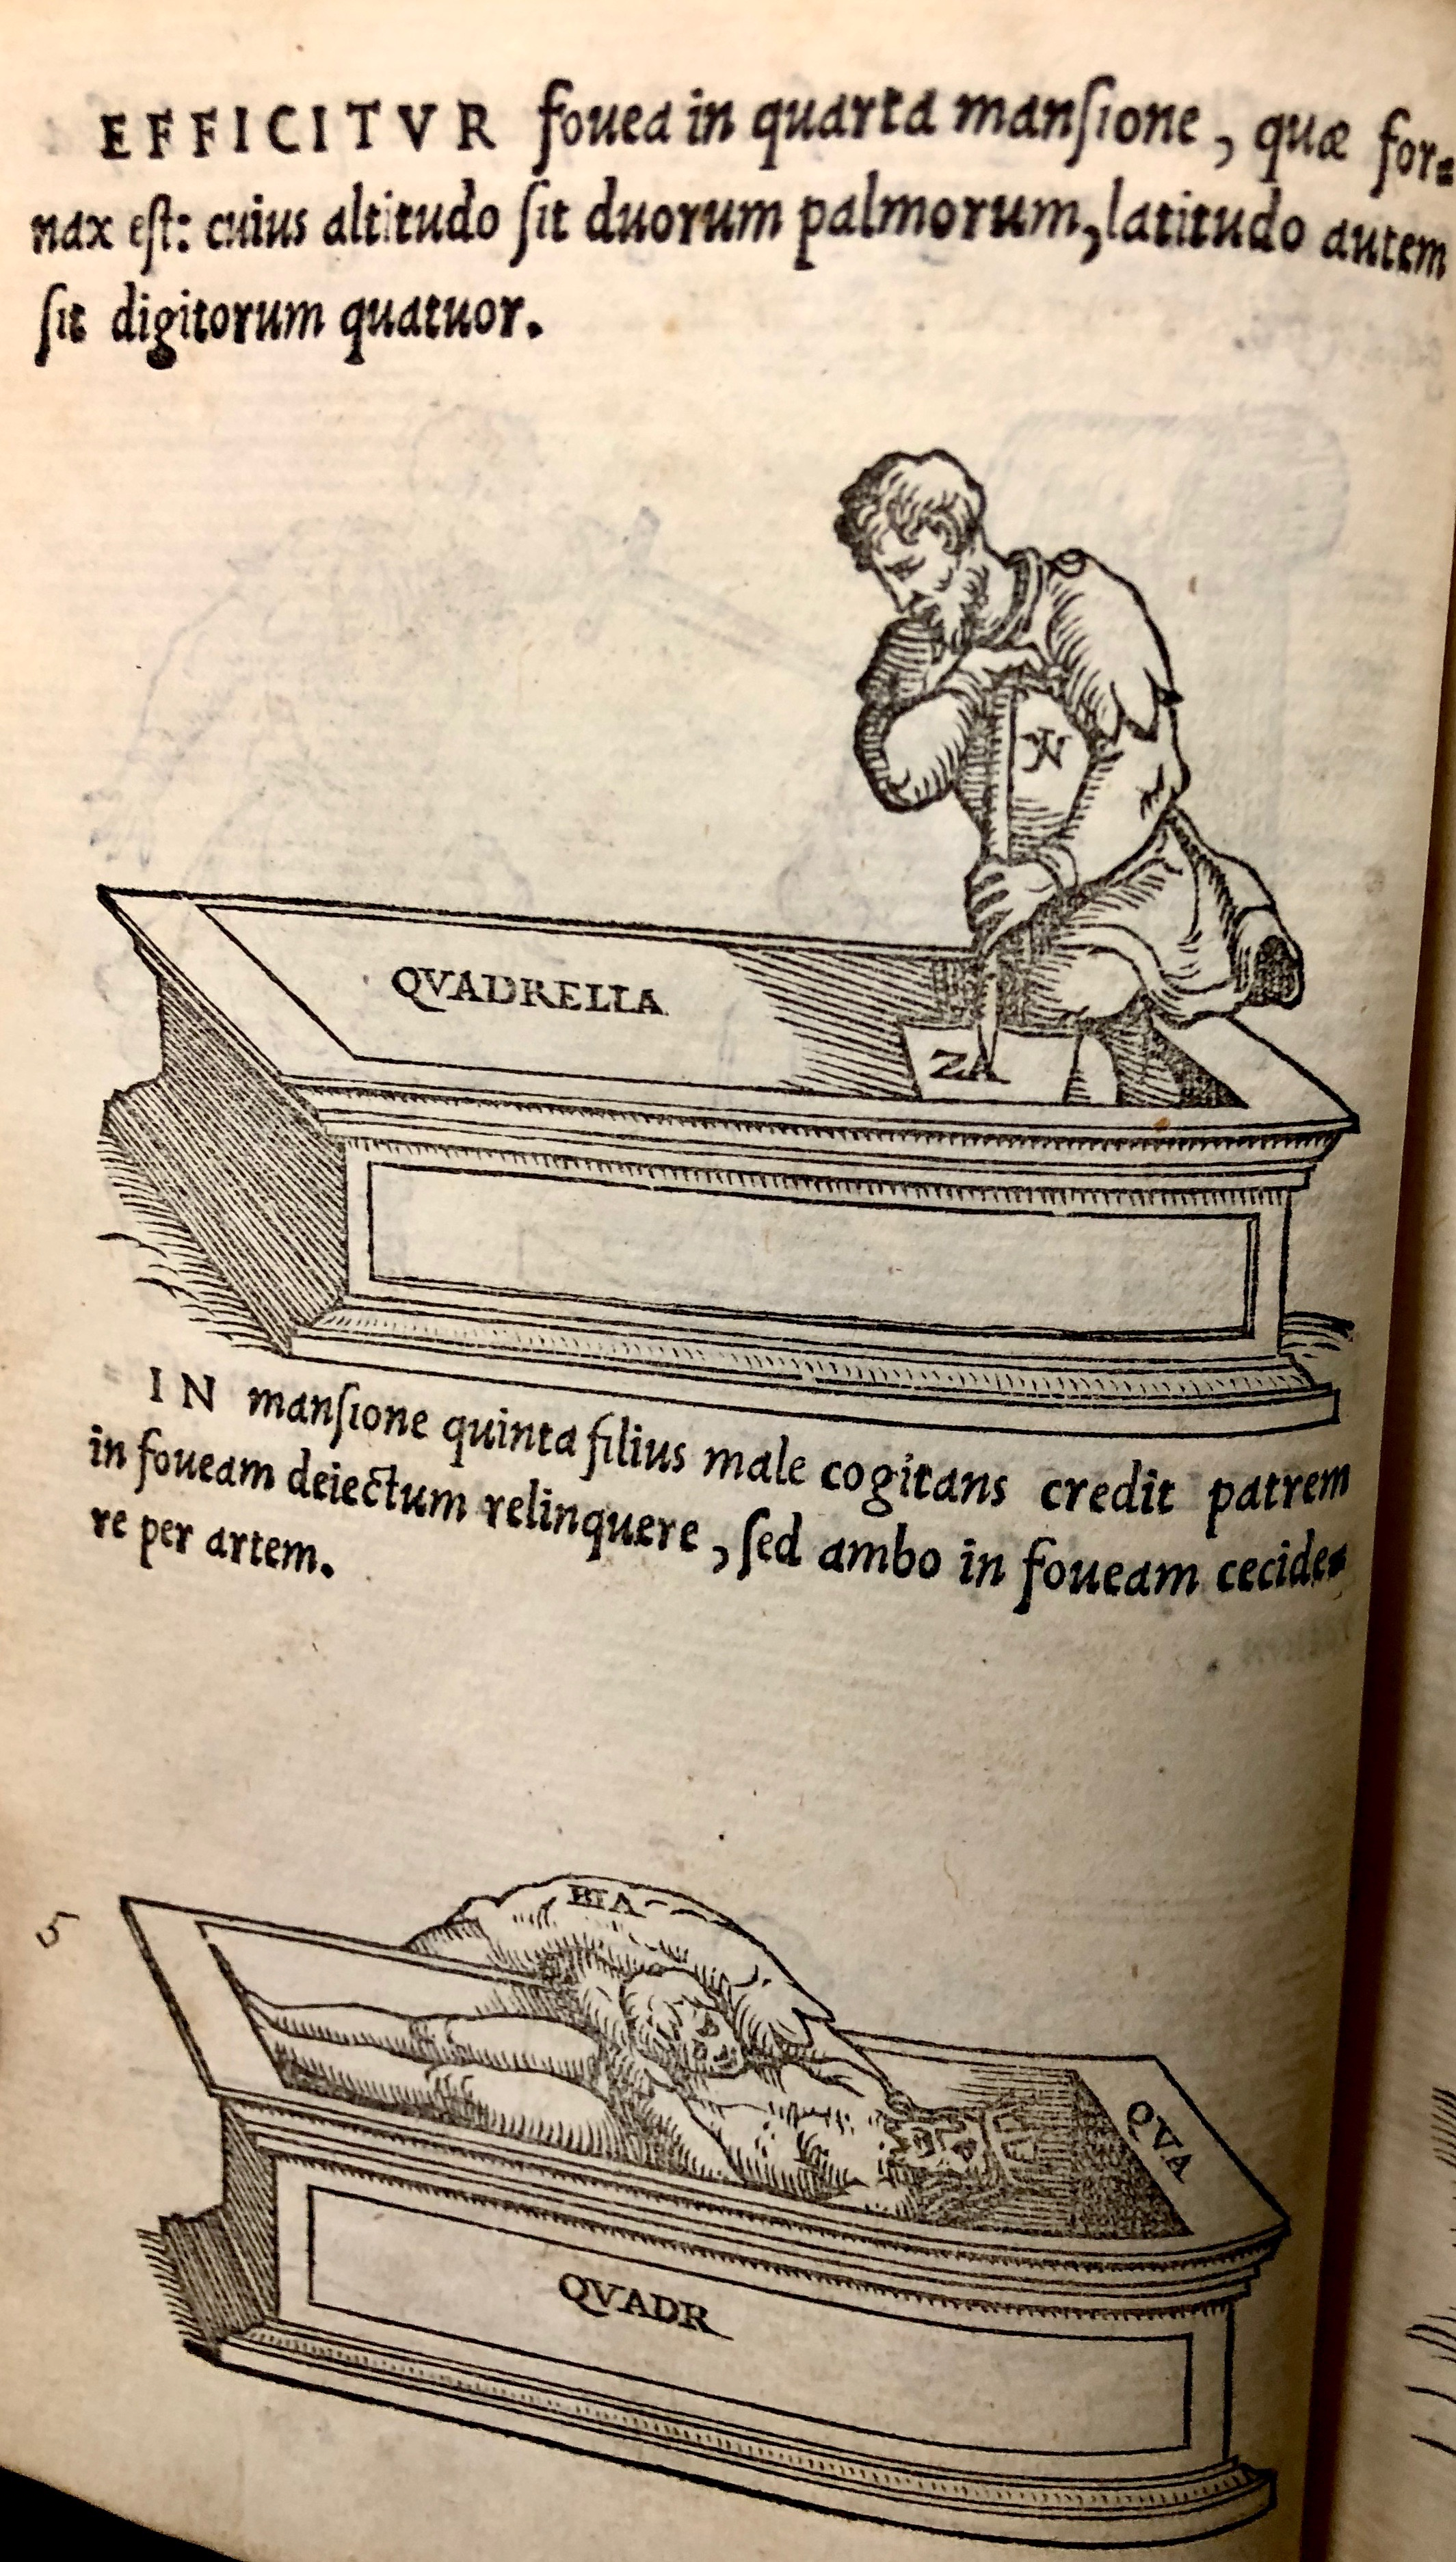 Step four: dig a grave in the furnace room. Step five: the son throws his father, the King, into the grave - but oh no! He falls in too!  From ' Pretiosa margarita : novella de thesauro, ac pretiosissimo philosophorum lapide' by Giano Lacinio, 1546, Venice. (Maddison Collection 2B7, F10528400)